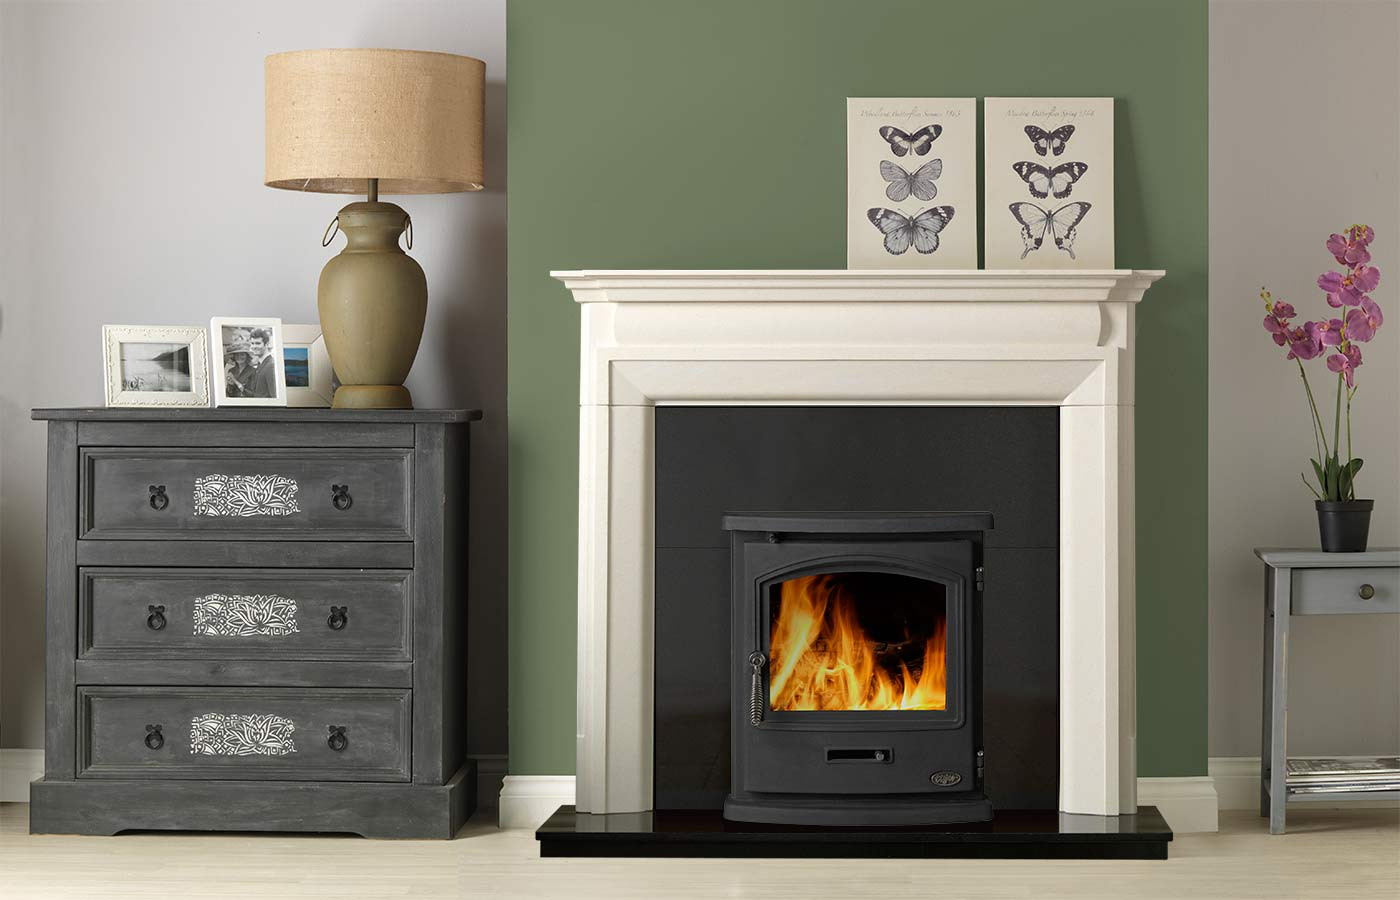 """Swainby 48"""" Fireplace Suite in Portuguese Limestone with Tiger Inset Stove"""